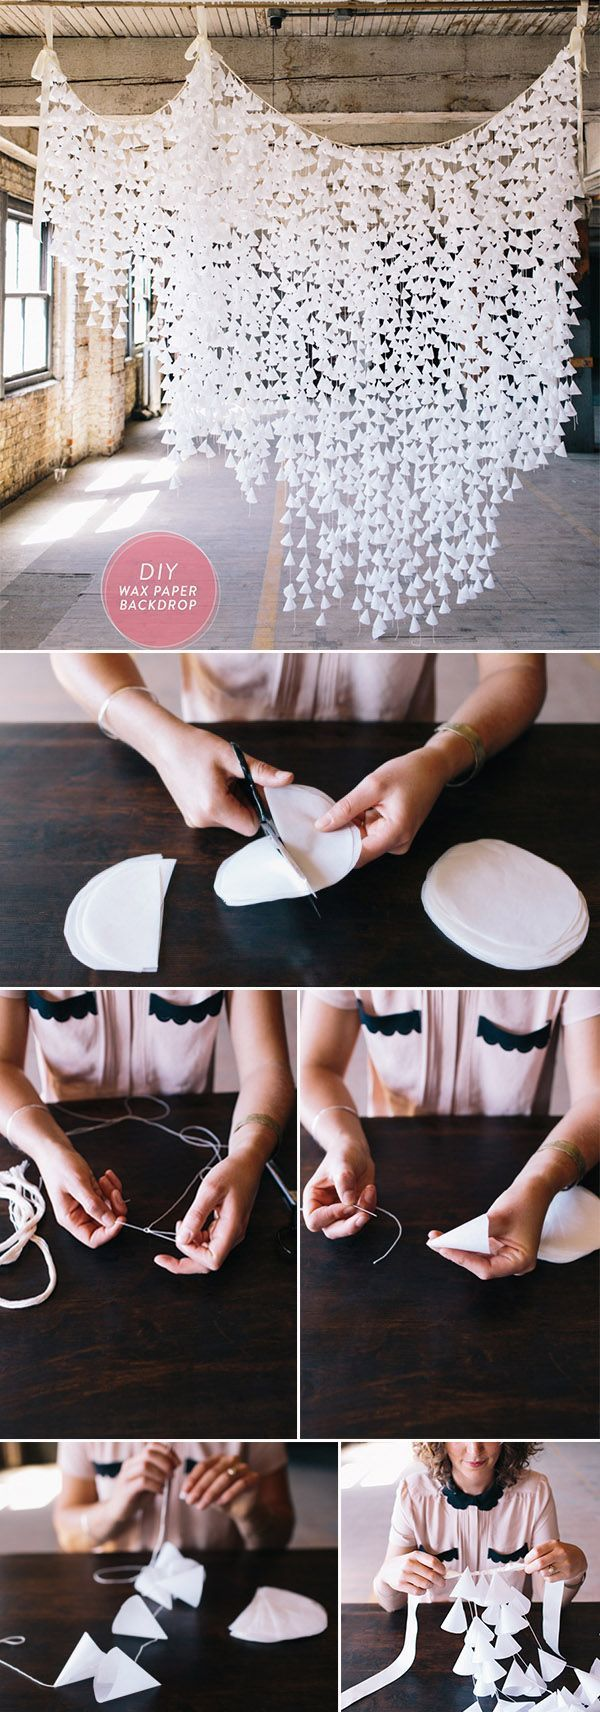 DIY Ideas: 10 Perfect Ways to Use Paper for Weddings or for a Very Important Event!